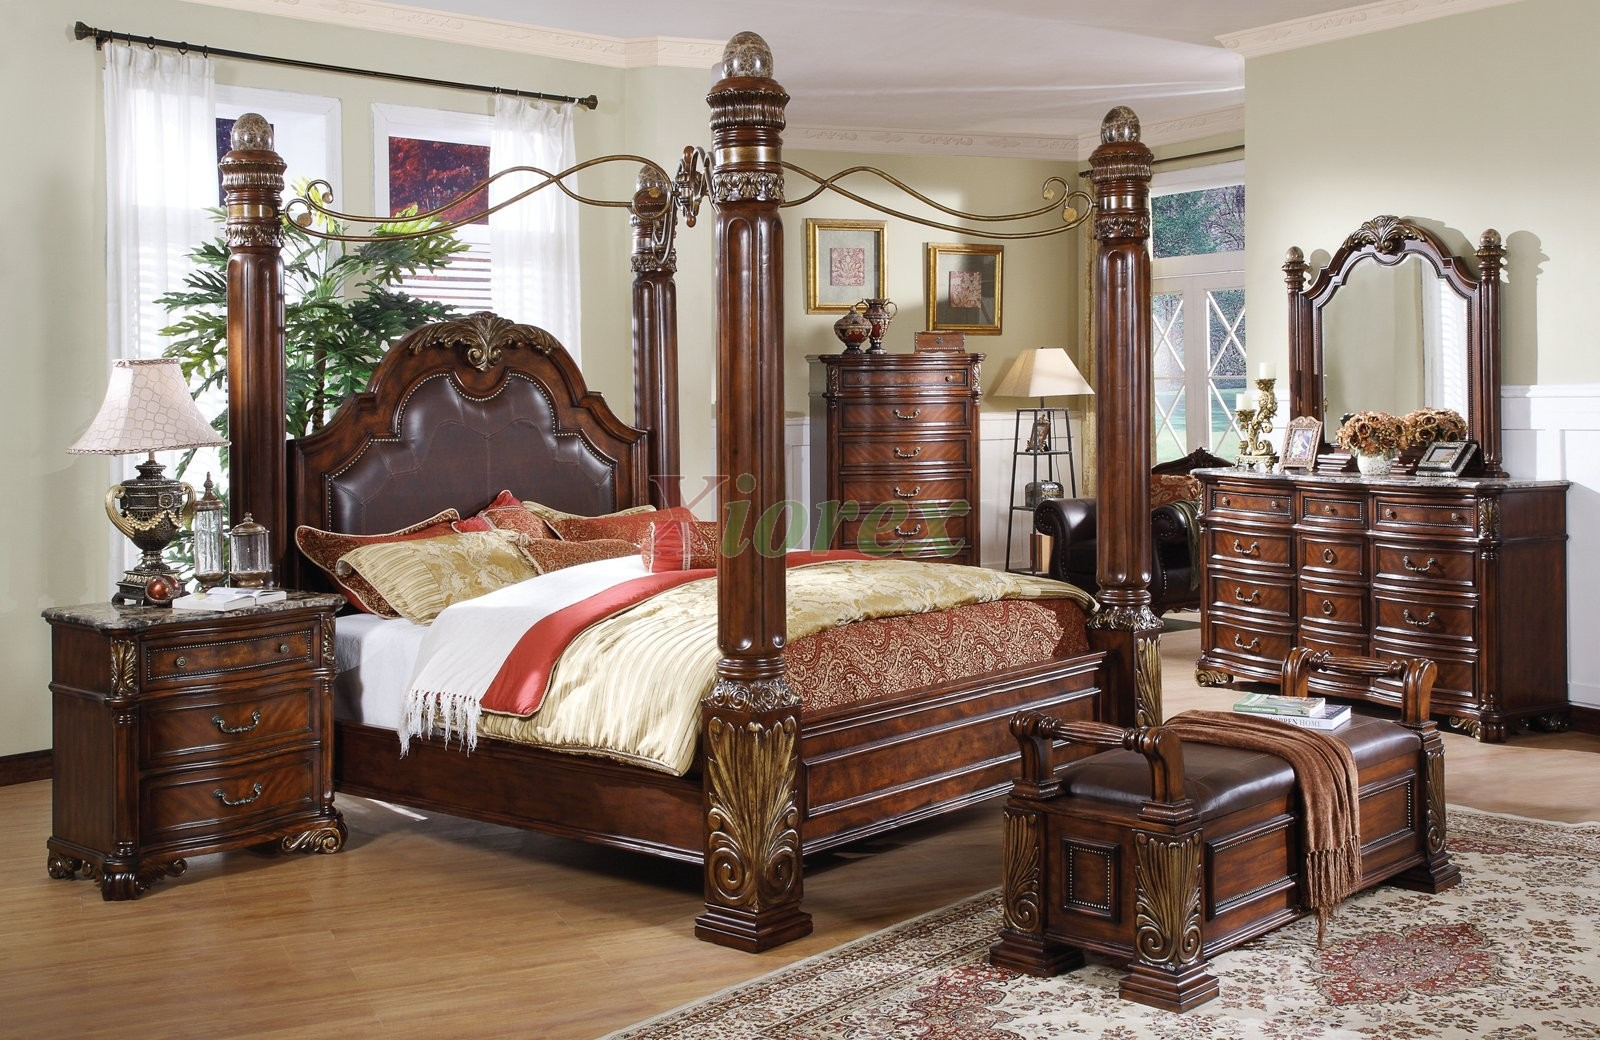 Canopy bed sets bedroom furniture sets w poster canopy for Headboard and dresser